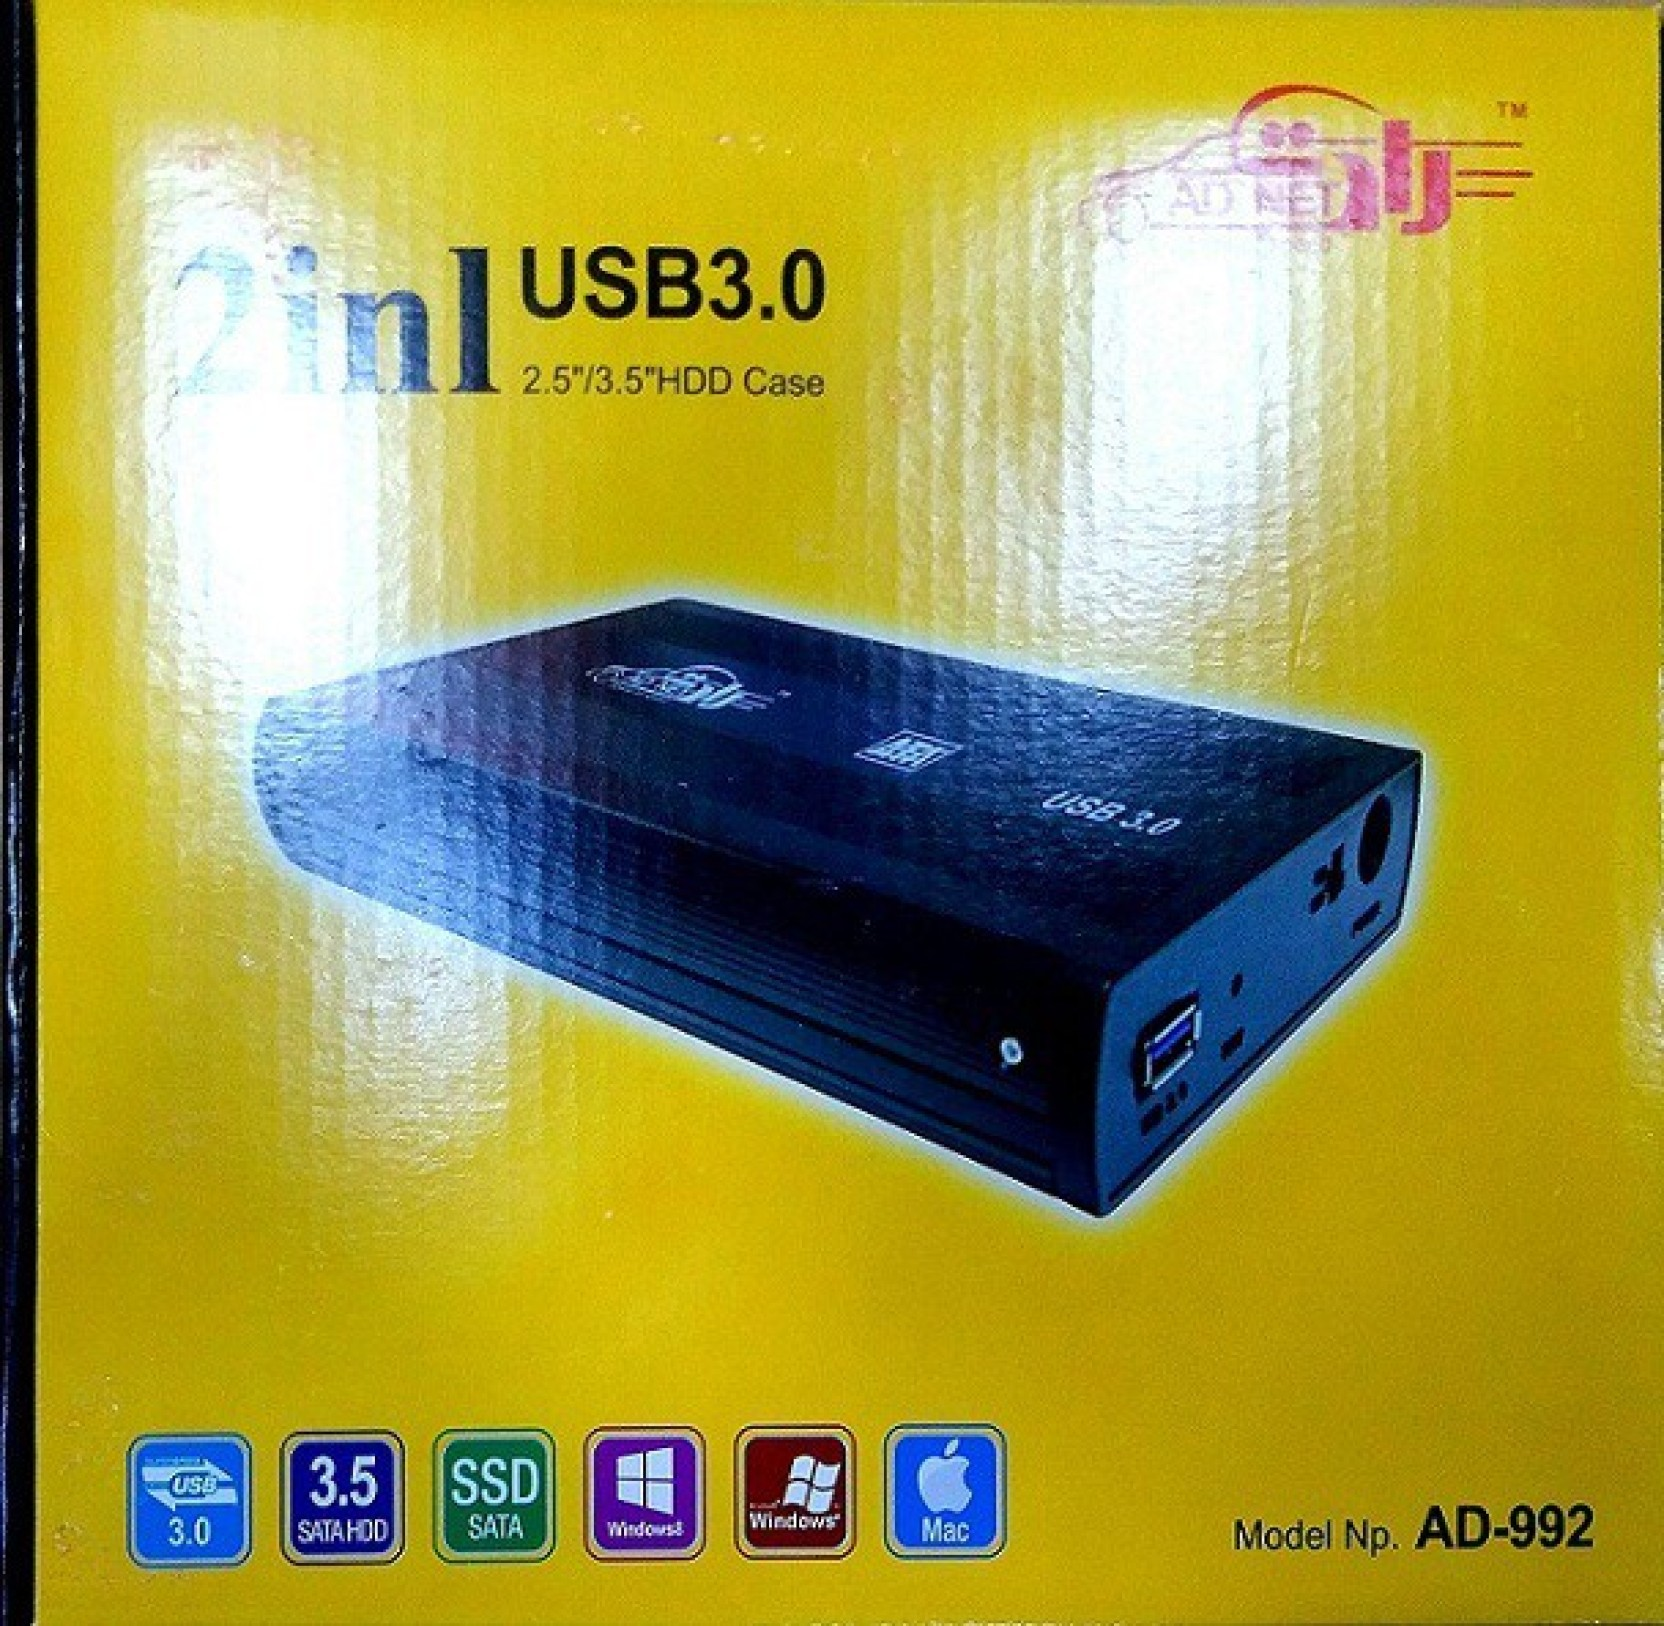 Daftar Harga Cassing Hardisk 25 Samsung Usb 20 Case Hdd Laptop Orico Phi 35 35inch Protector Yellow Adnet 2 In 1 Casing Inch And Sata Hard Disk